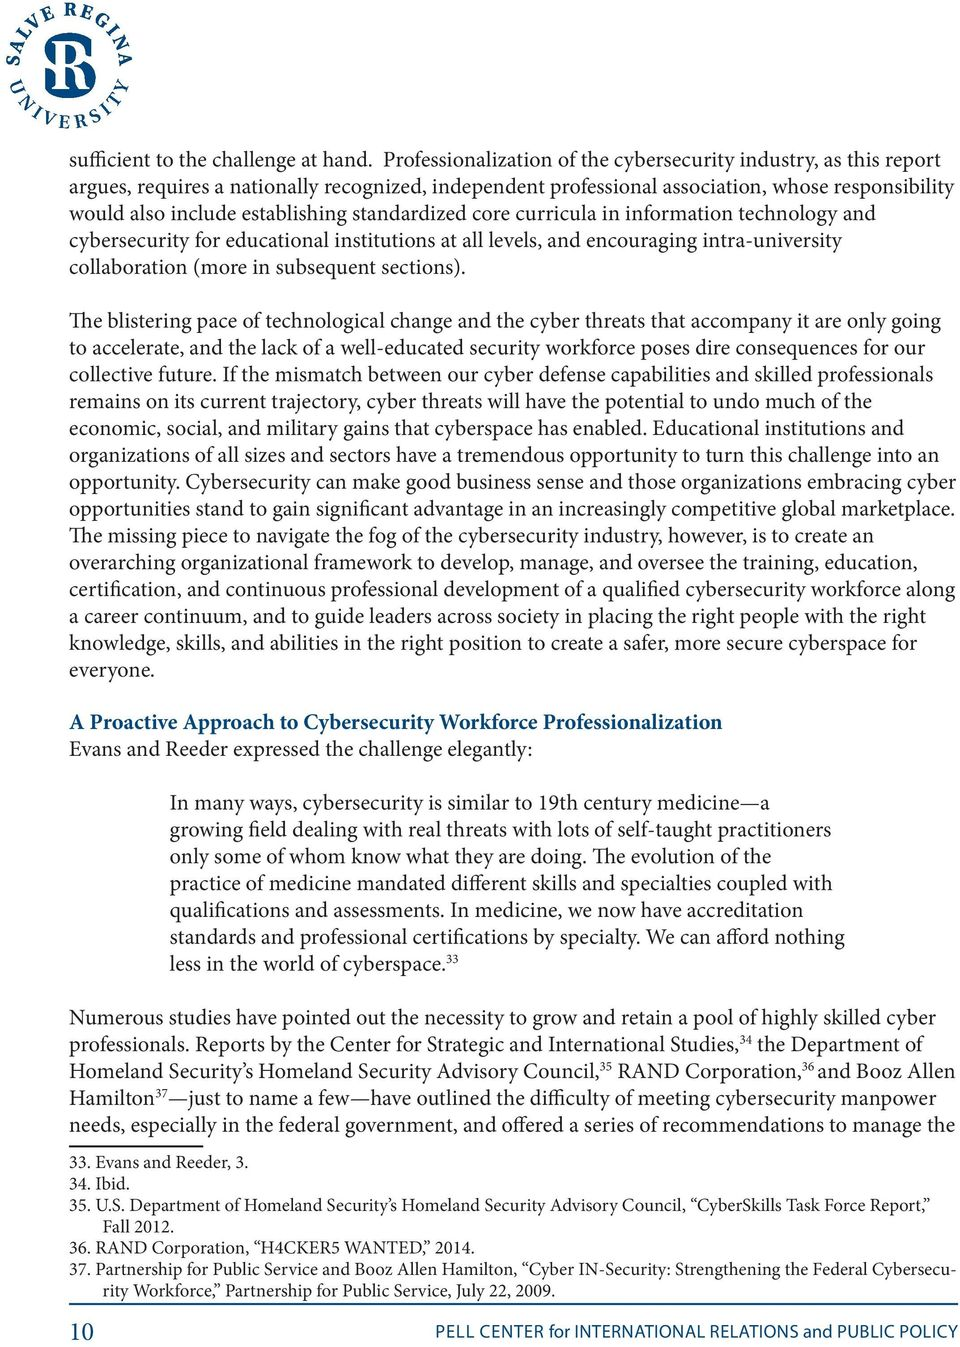 standardized core curricula in information technology and cybersecurity for educational institutions at all levels, and encouraging intra-university collaboration (more in subsequent sections).